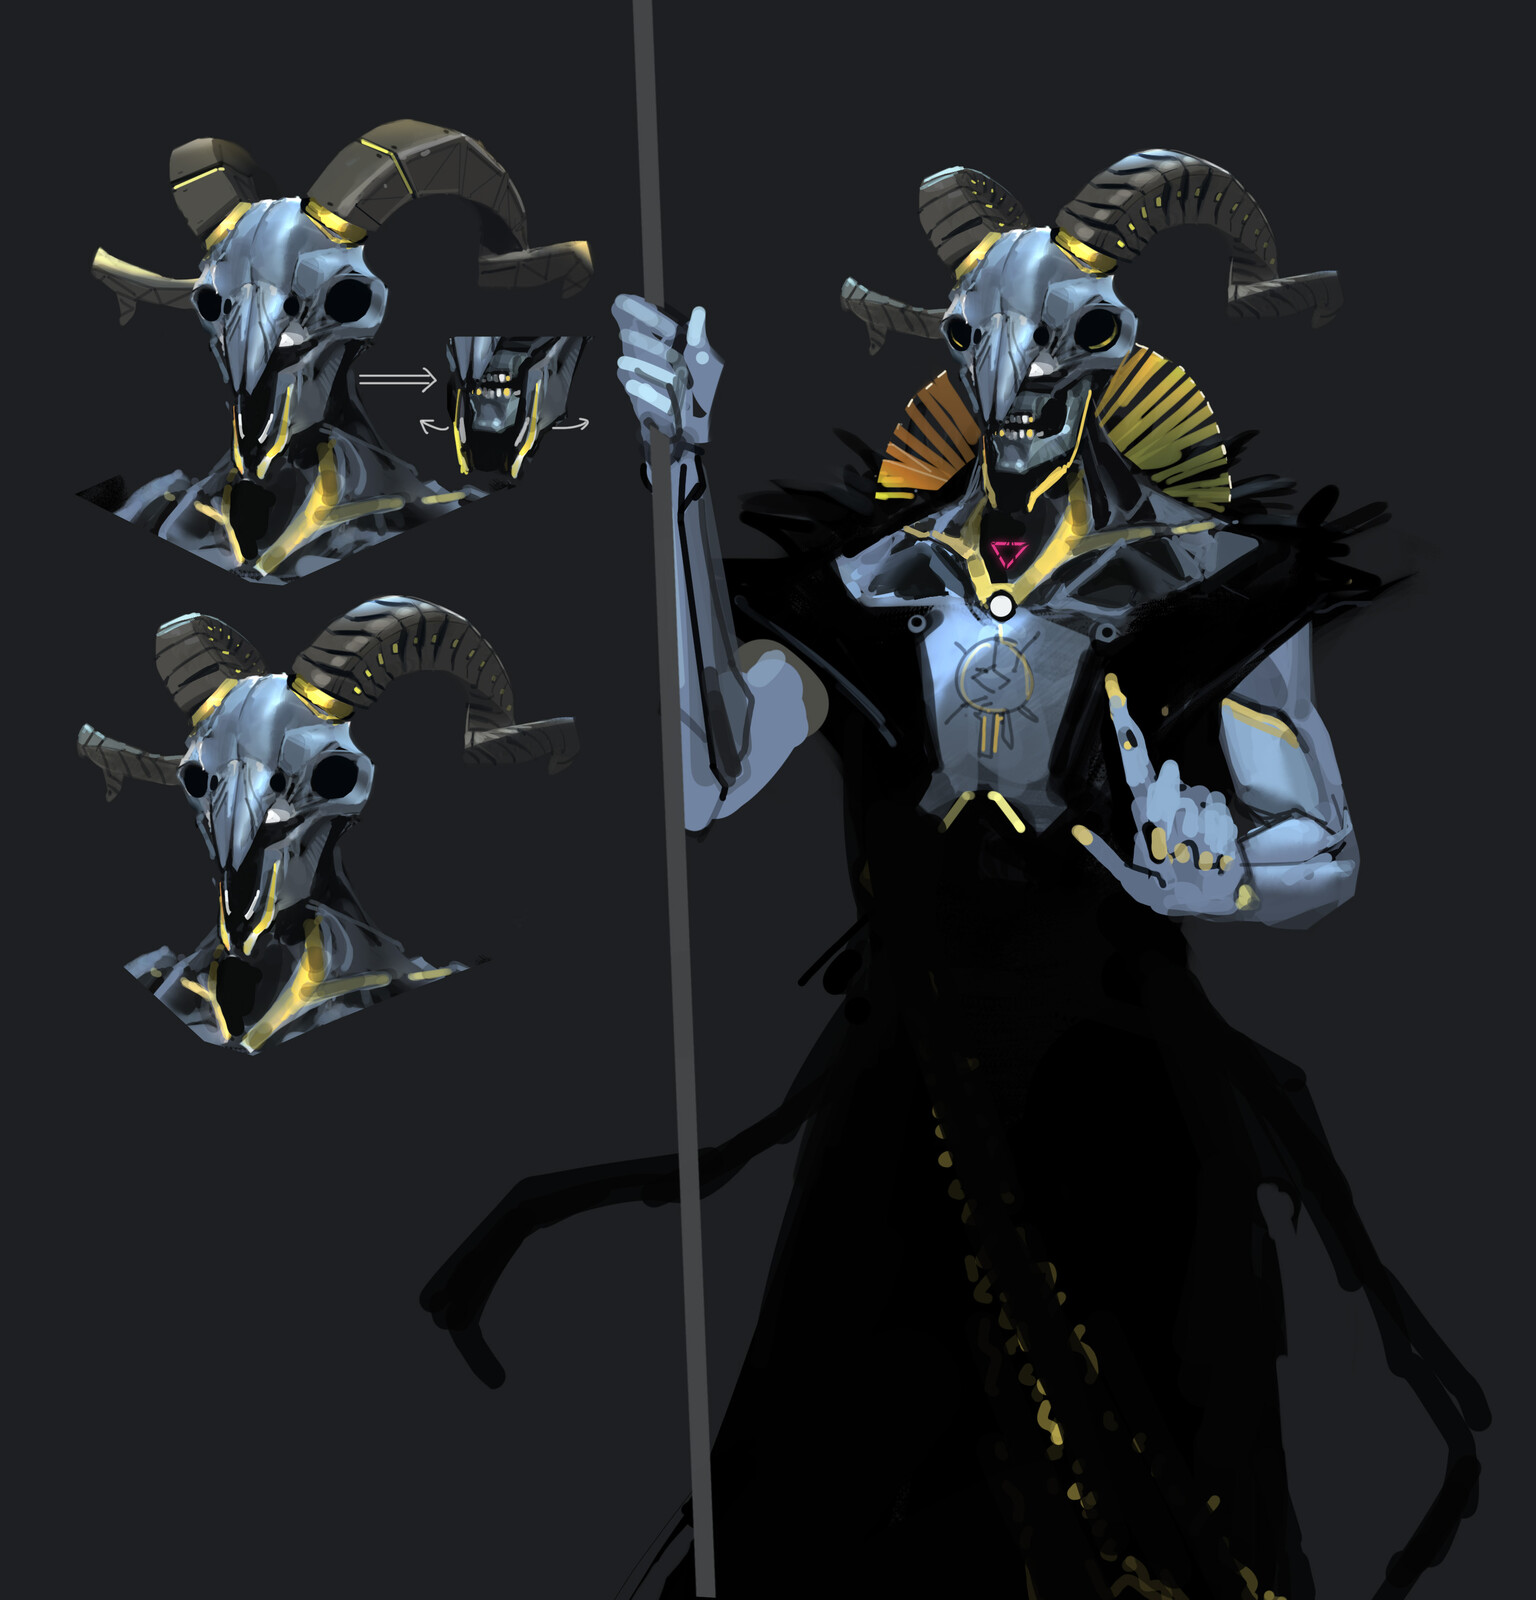 The ram skull archetype was chosen in the end